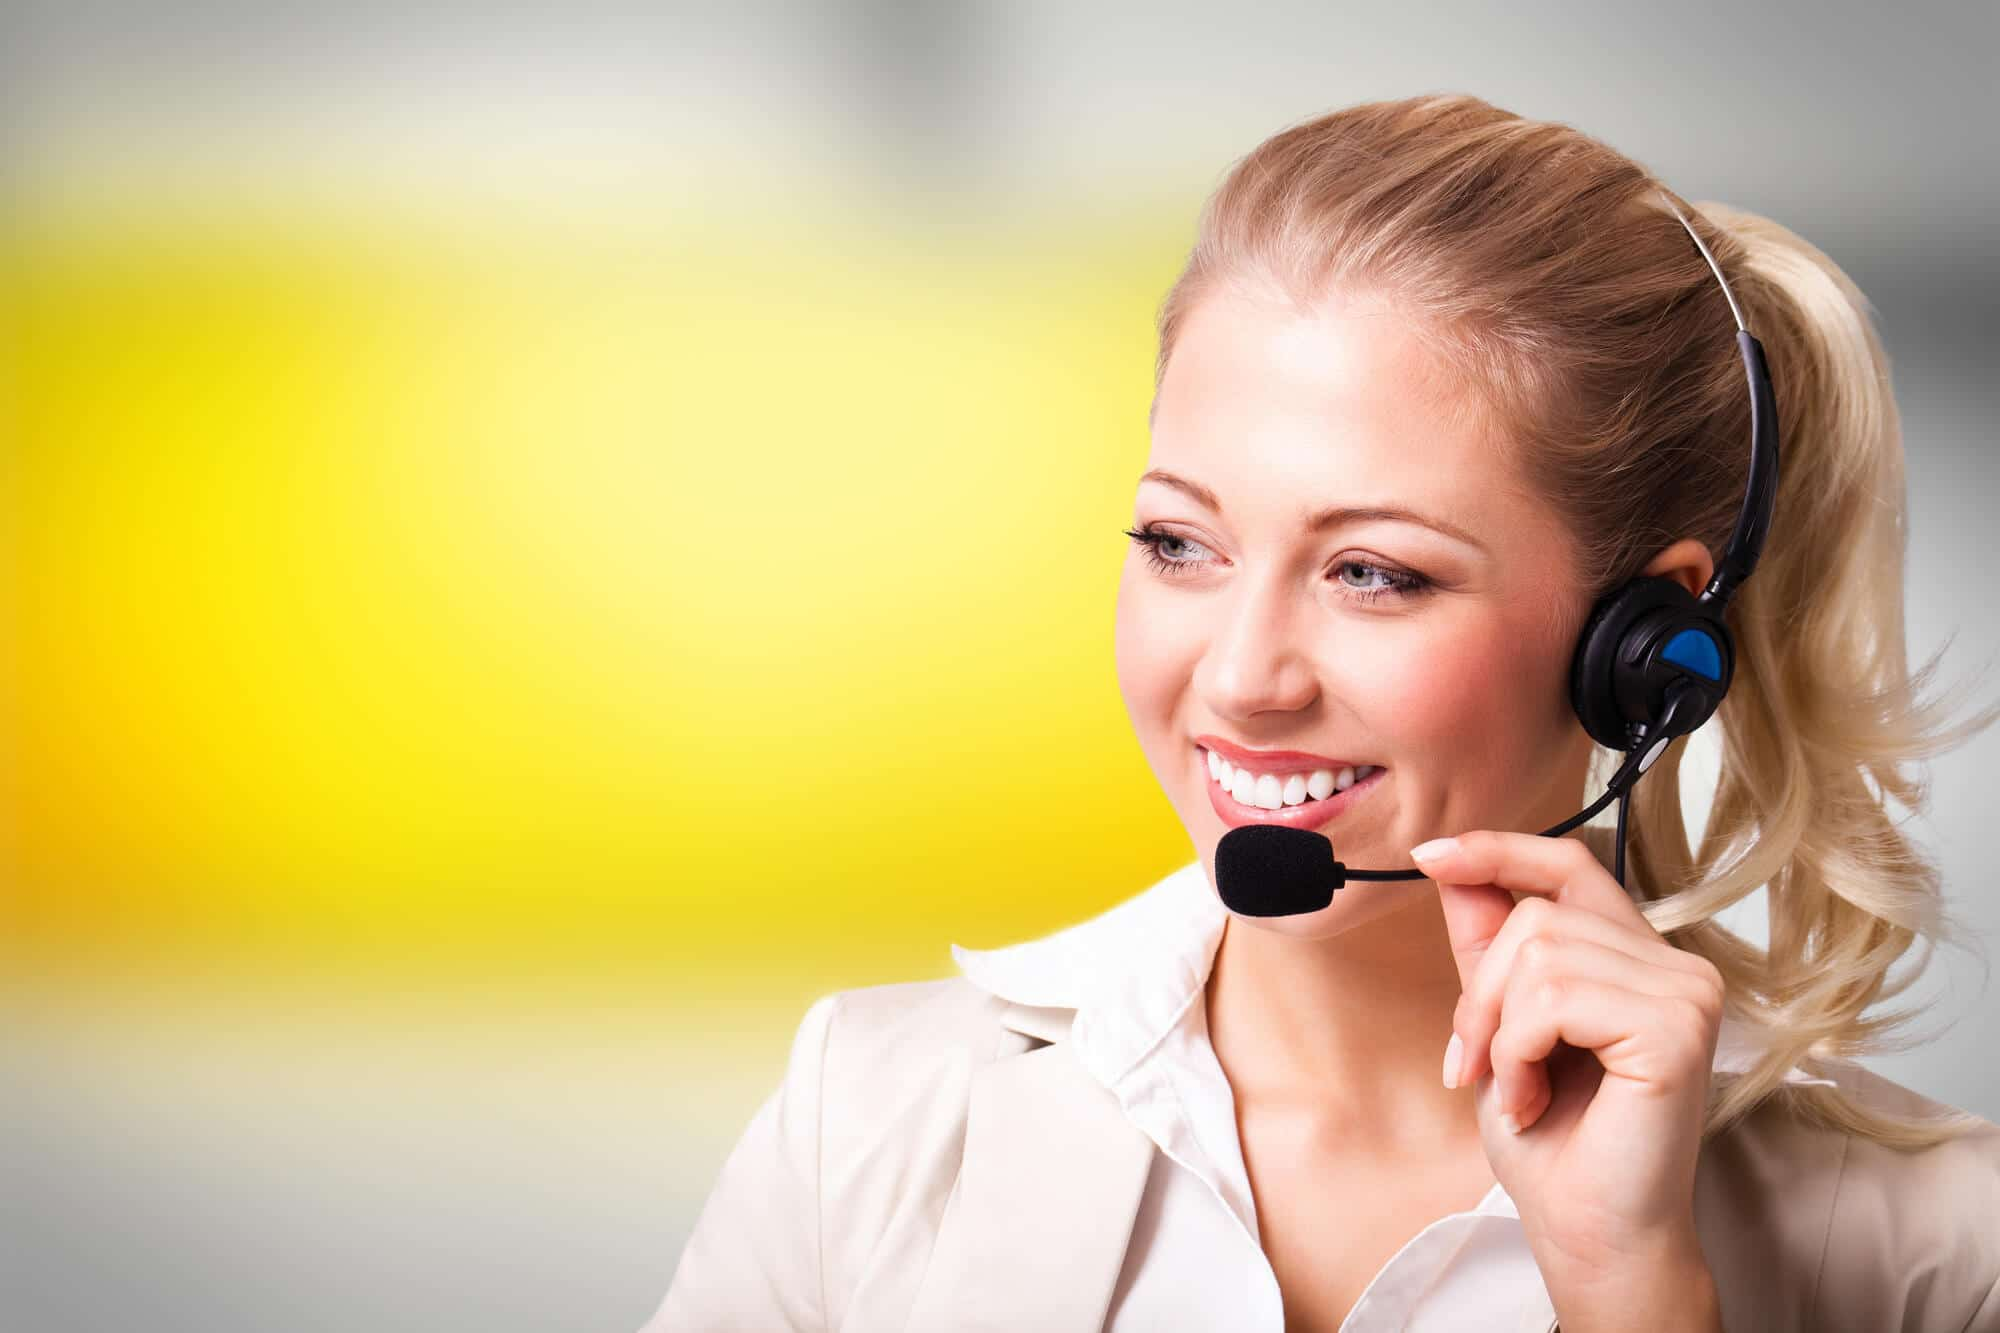 How to Hire Quality Call Center Services